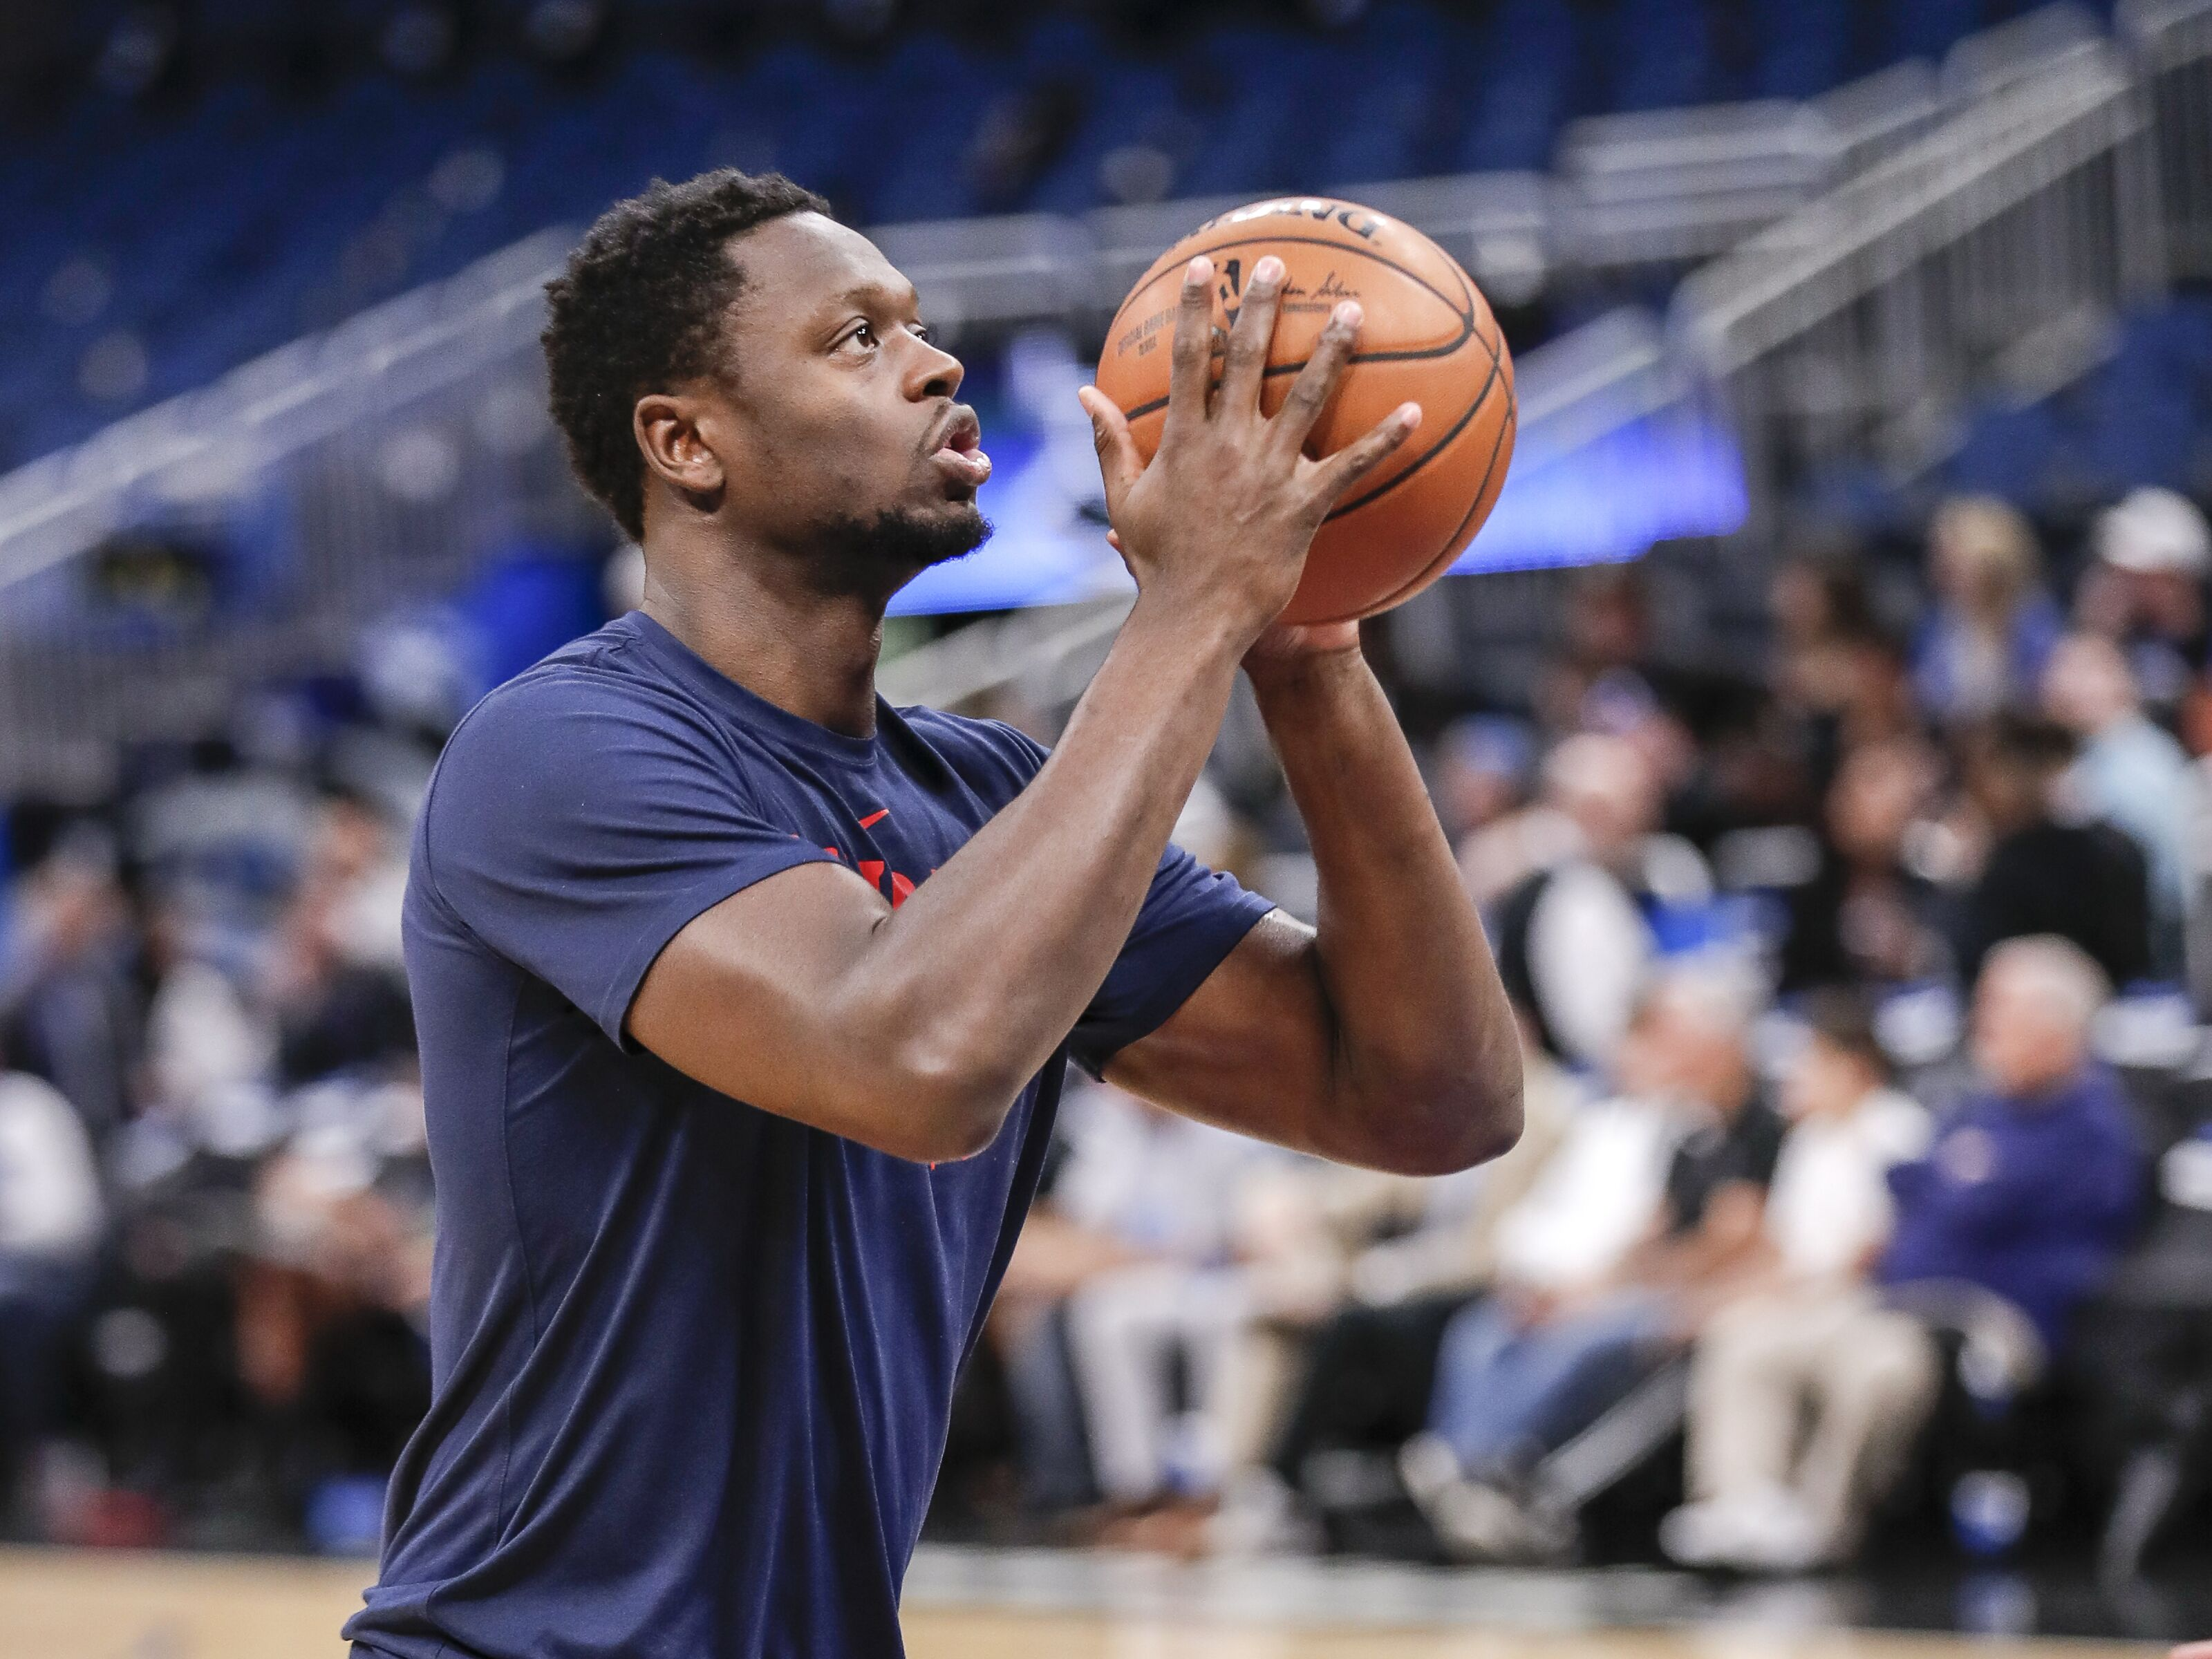 If Julius Randle opts out, should the Pelicans bring him back?